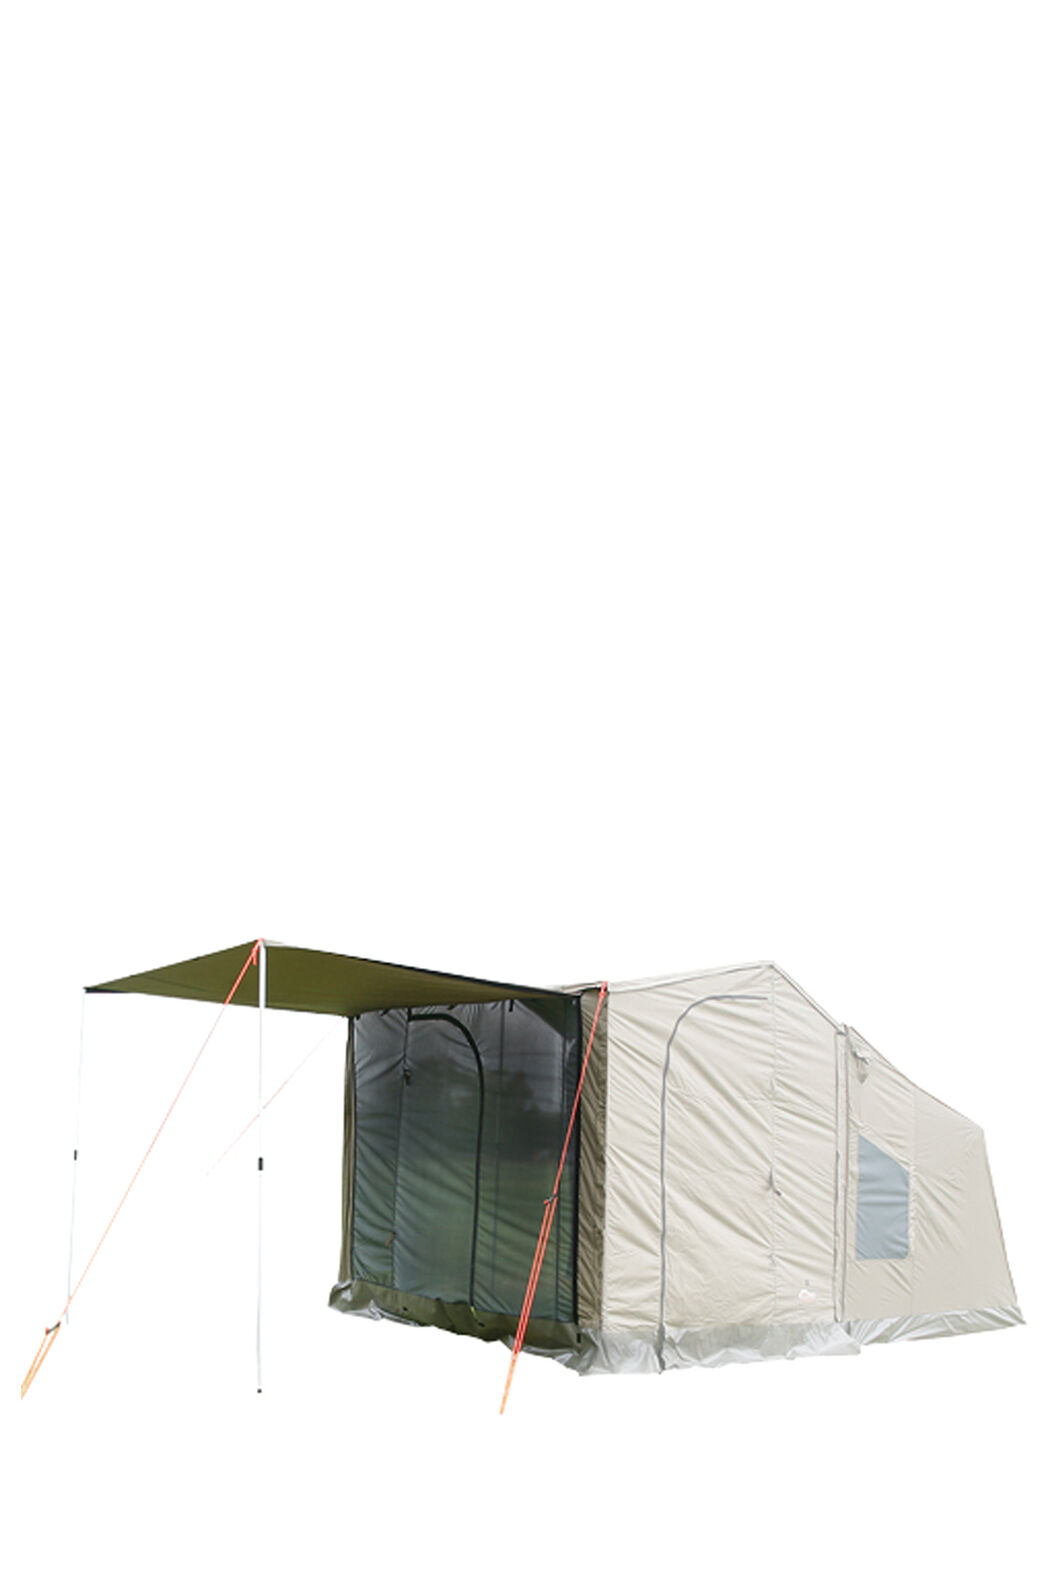 Oztent RV3-4 Front Panel, None, hi-res